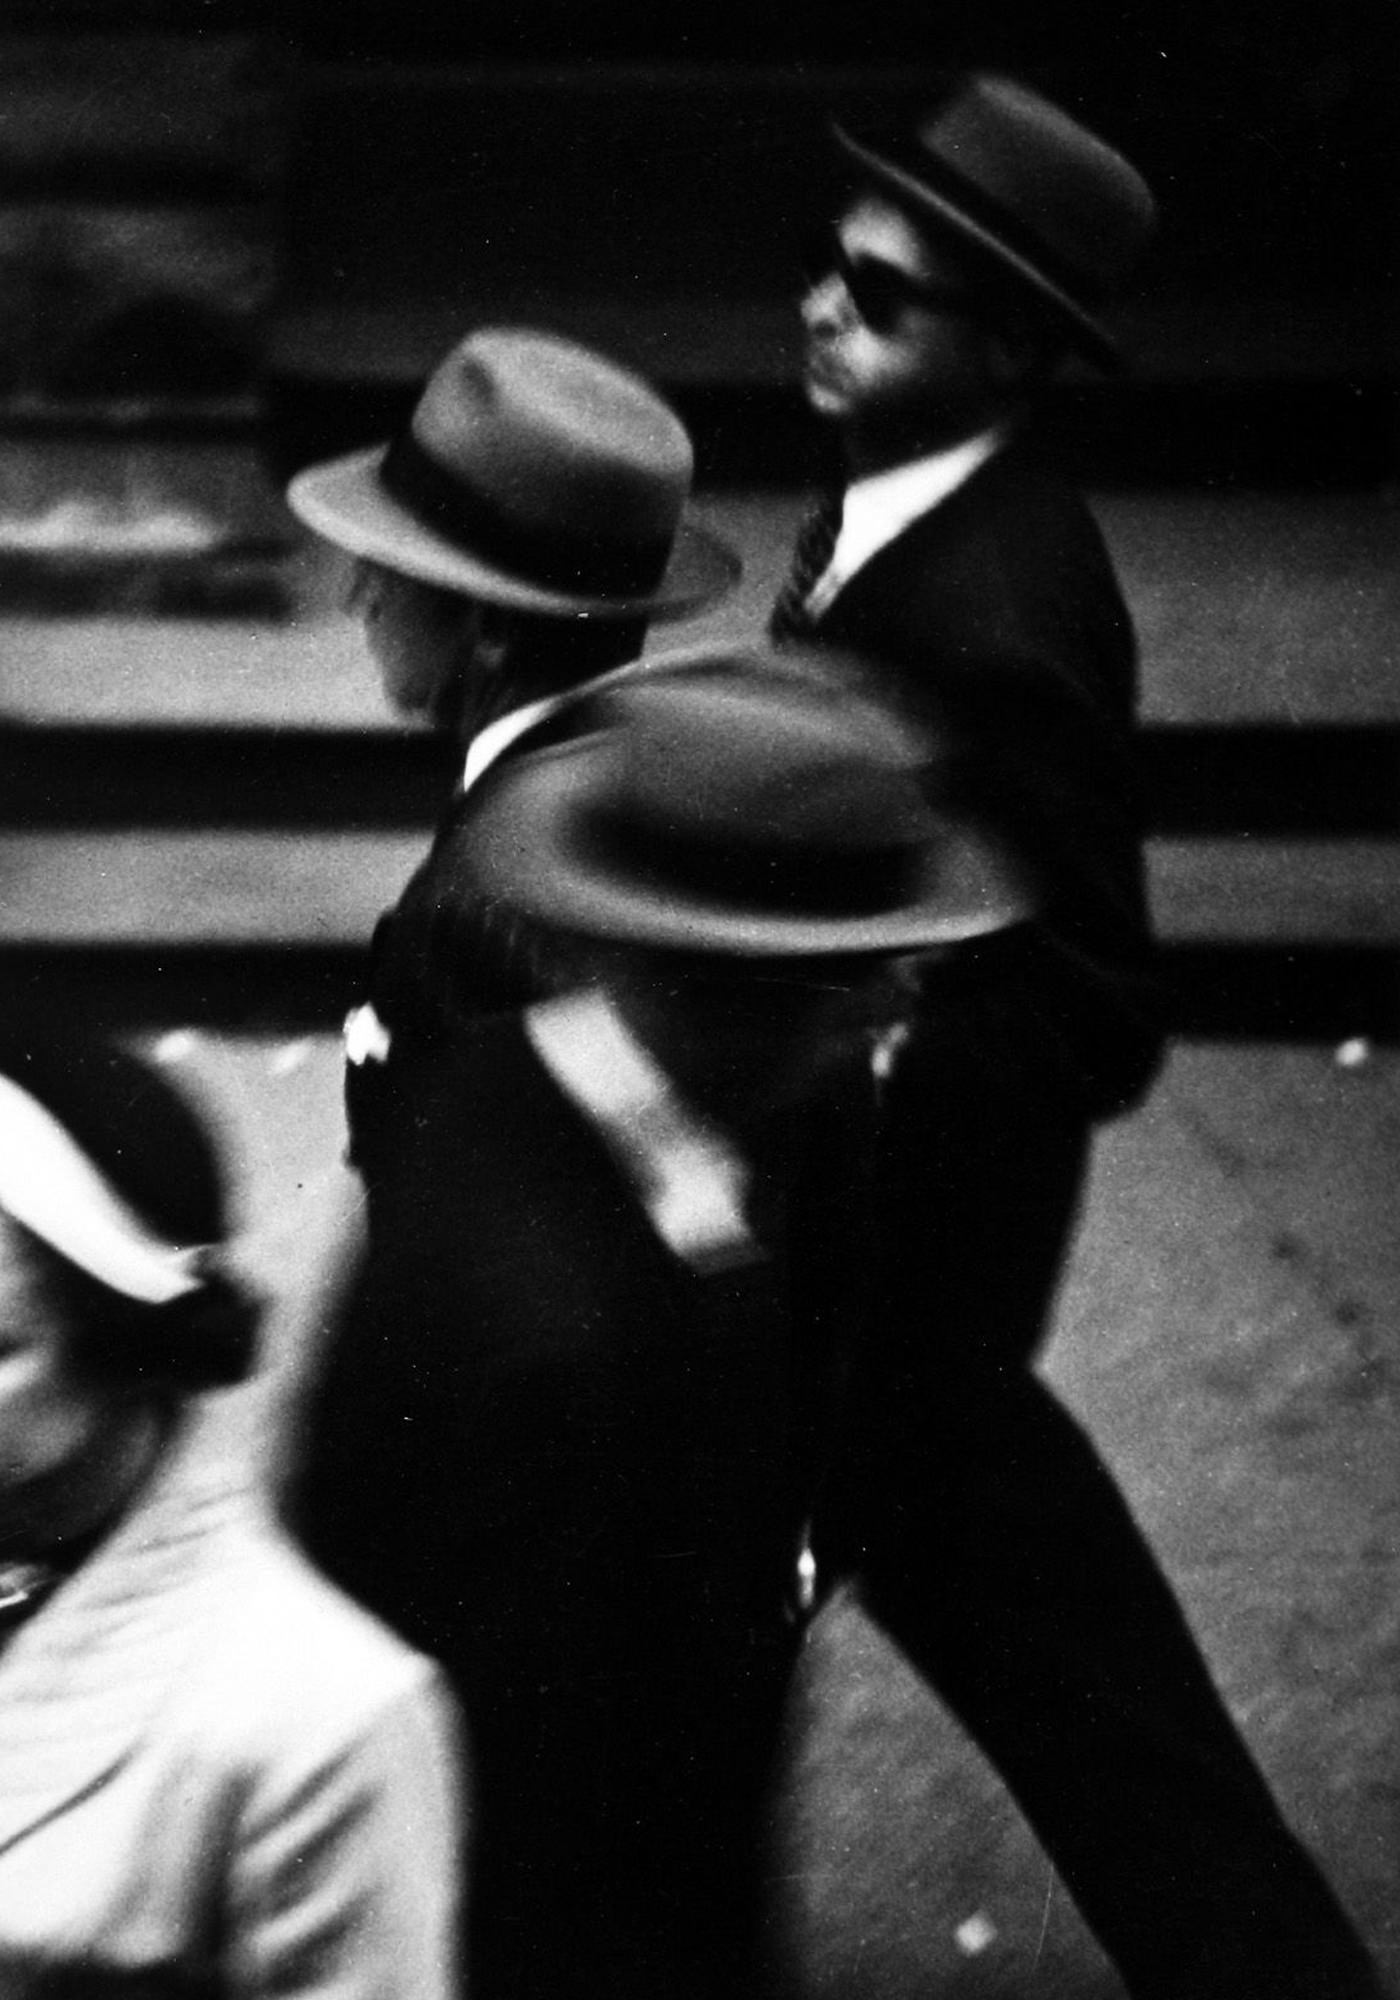 Saul Leiter Hats vers 1948